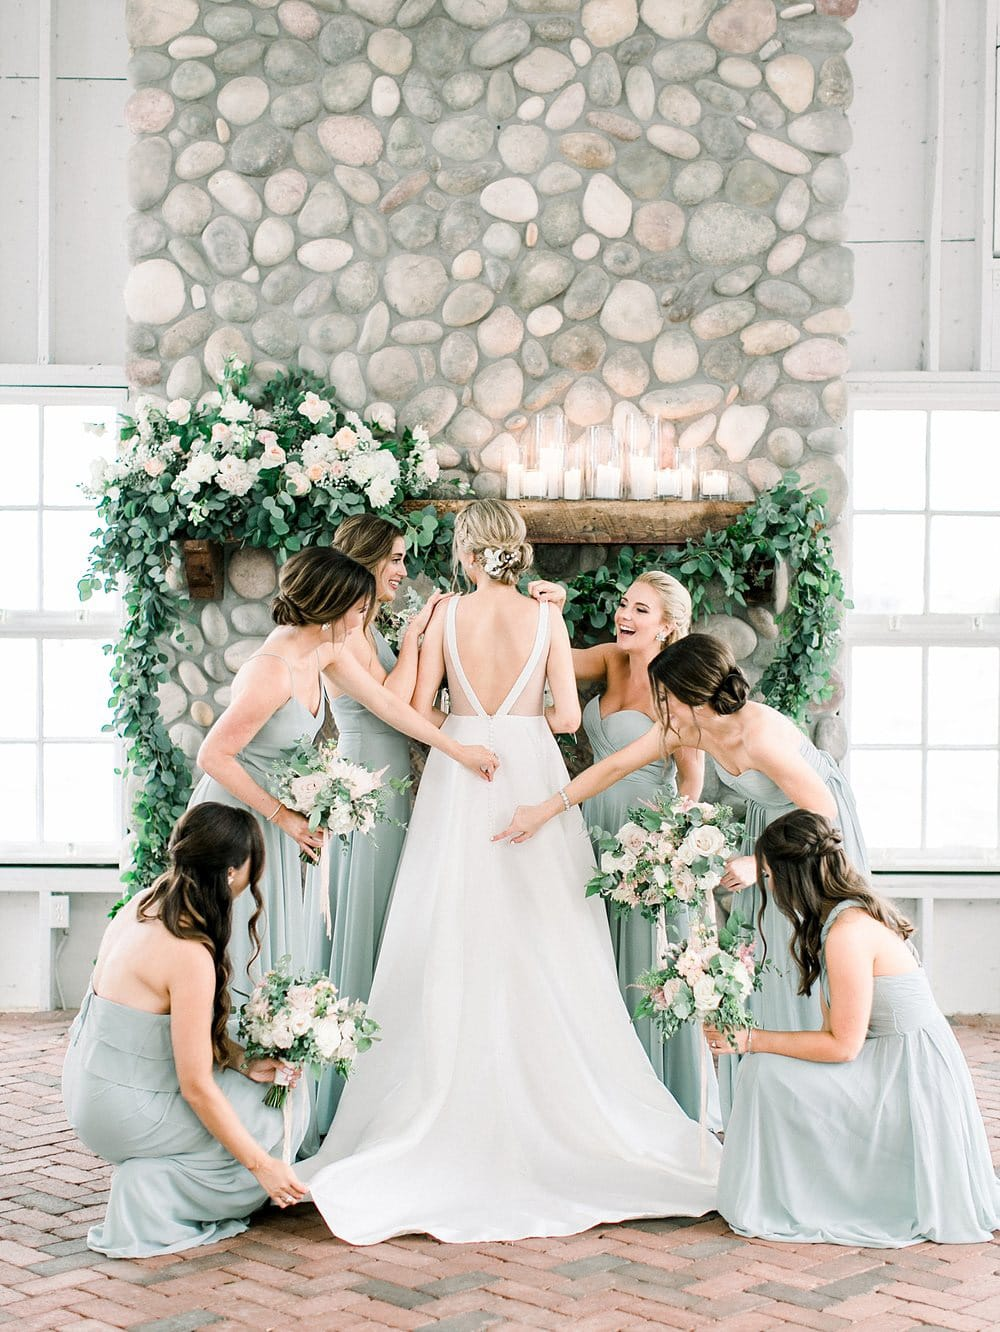 10 Fun Things to Do on Your Wedding Morning with Your Bridesmaids | Photography: Jessa Schifilitti